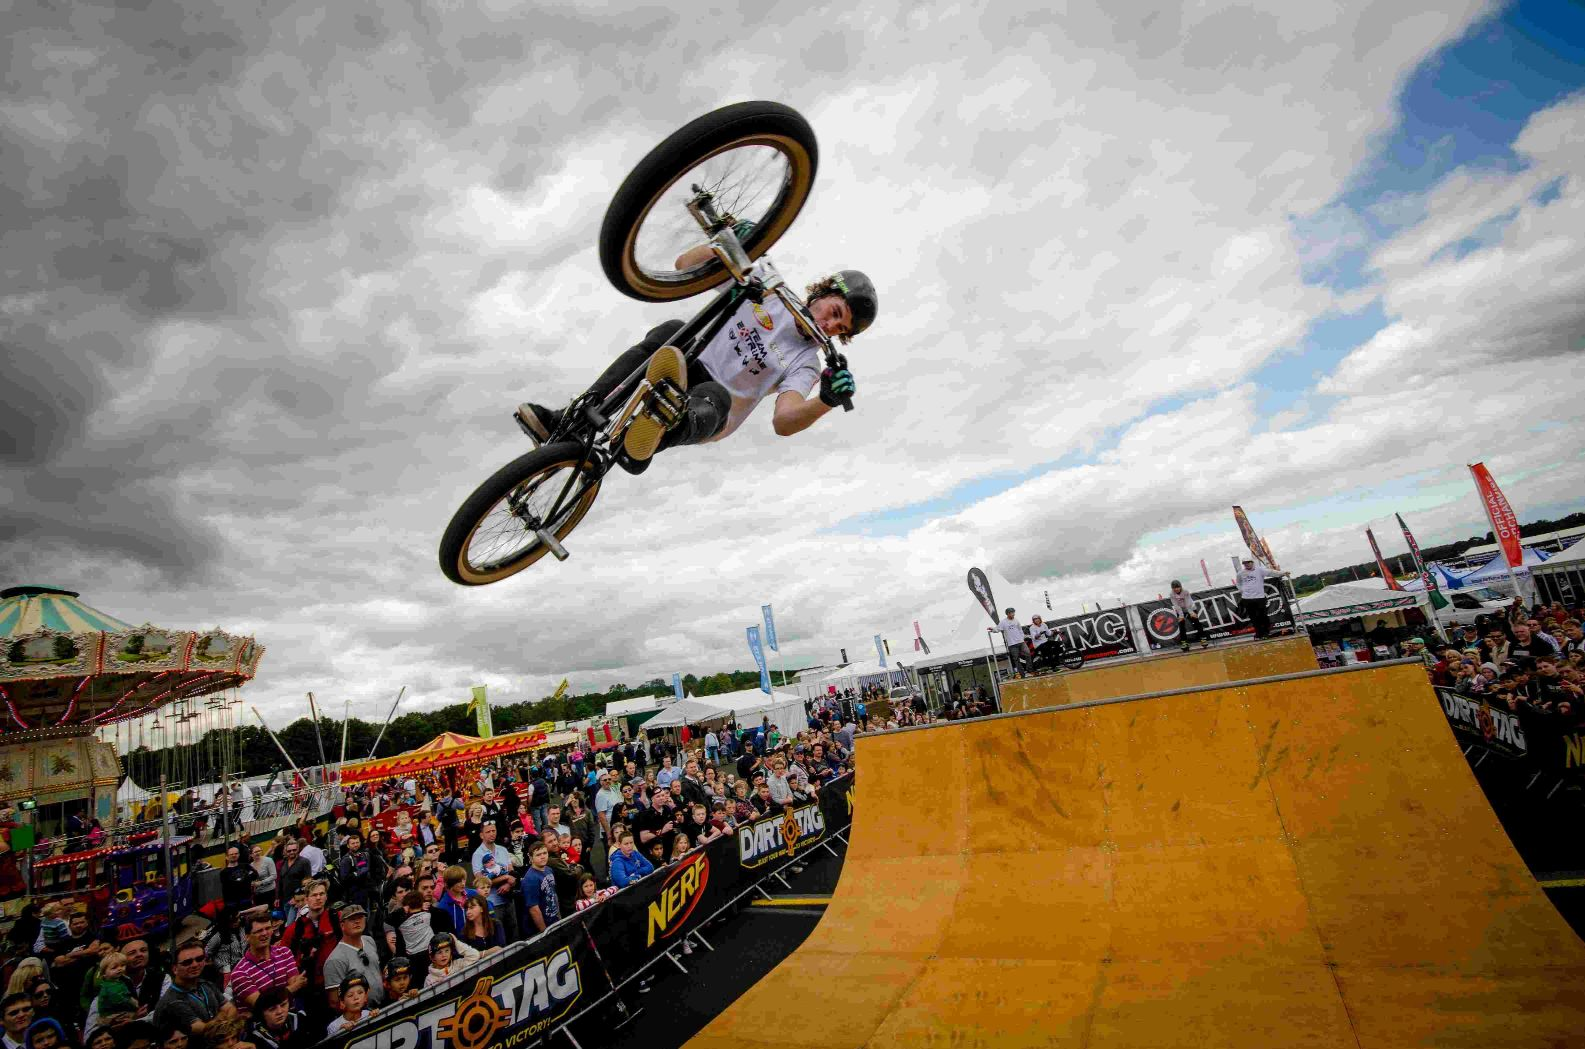 BMX bikes, skateboards and scooters – Bournemouth Wheels Festival welcomes top UK talent